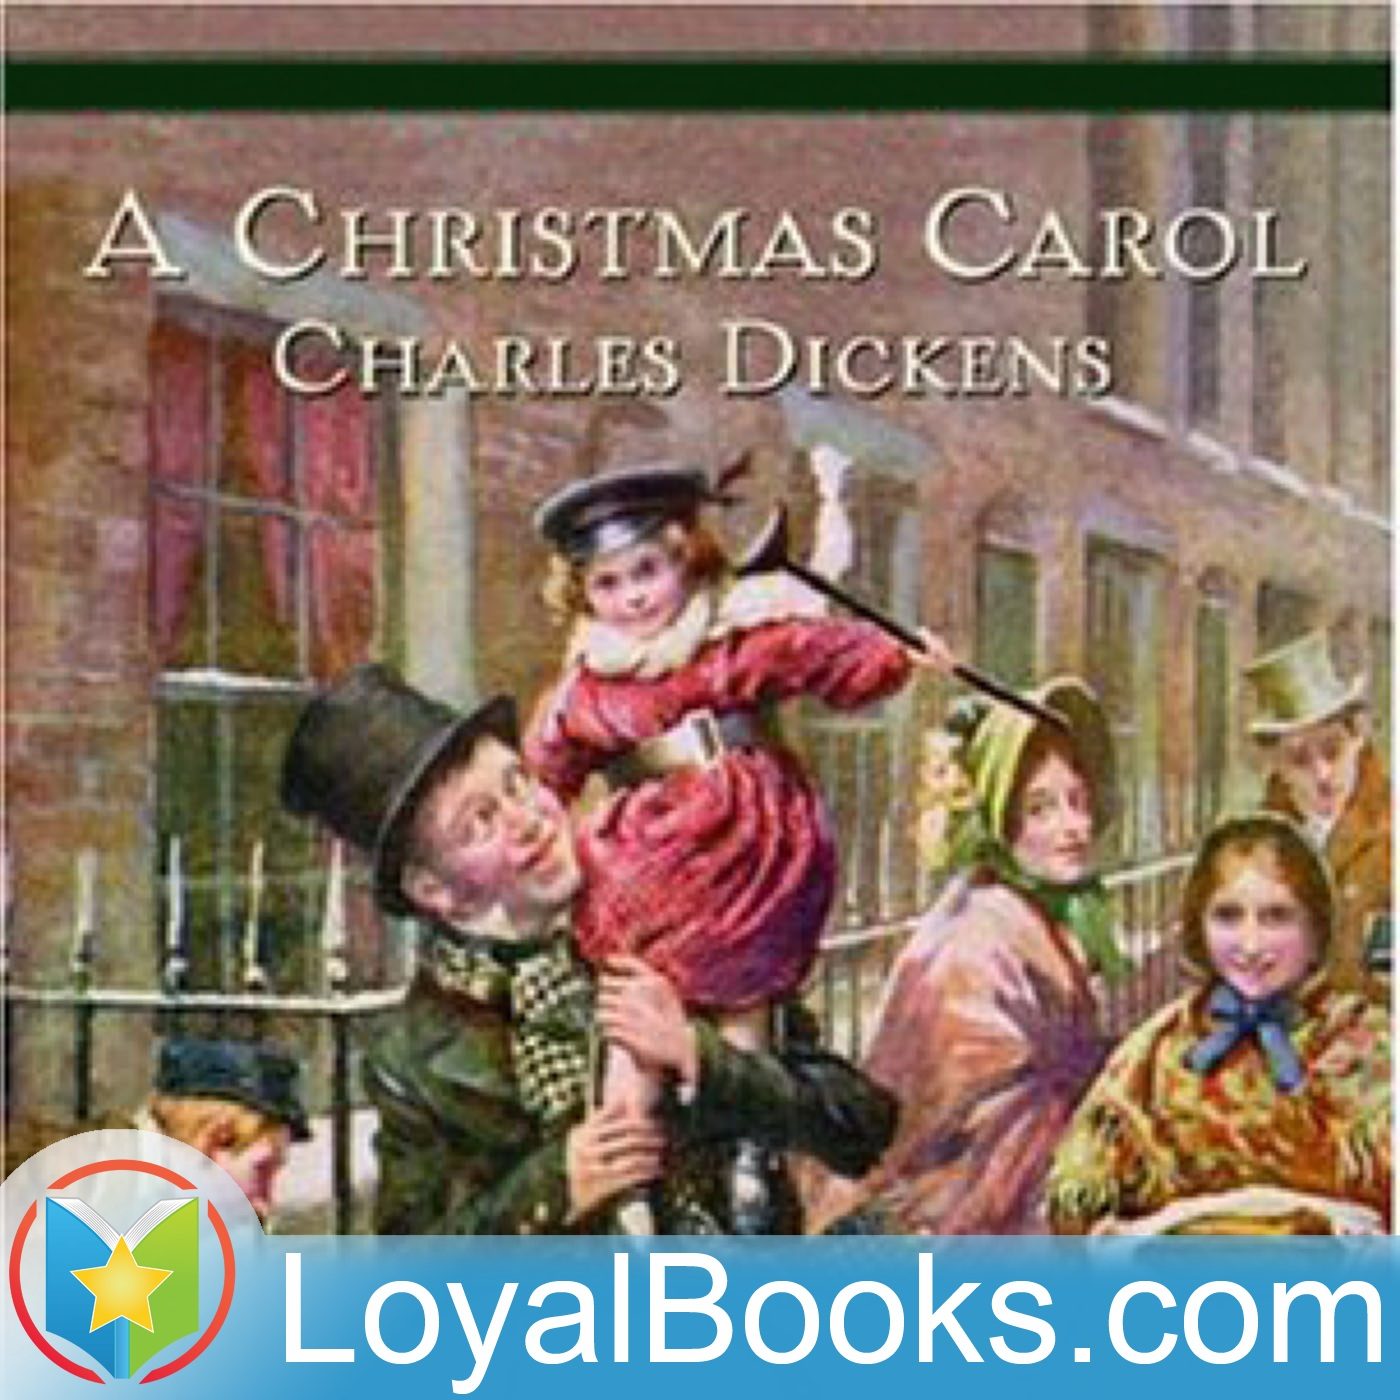 a christmas carol by charles dickens by loyal books on apple podcasts